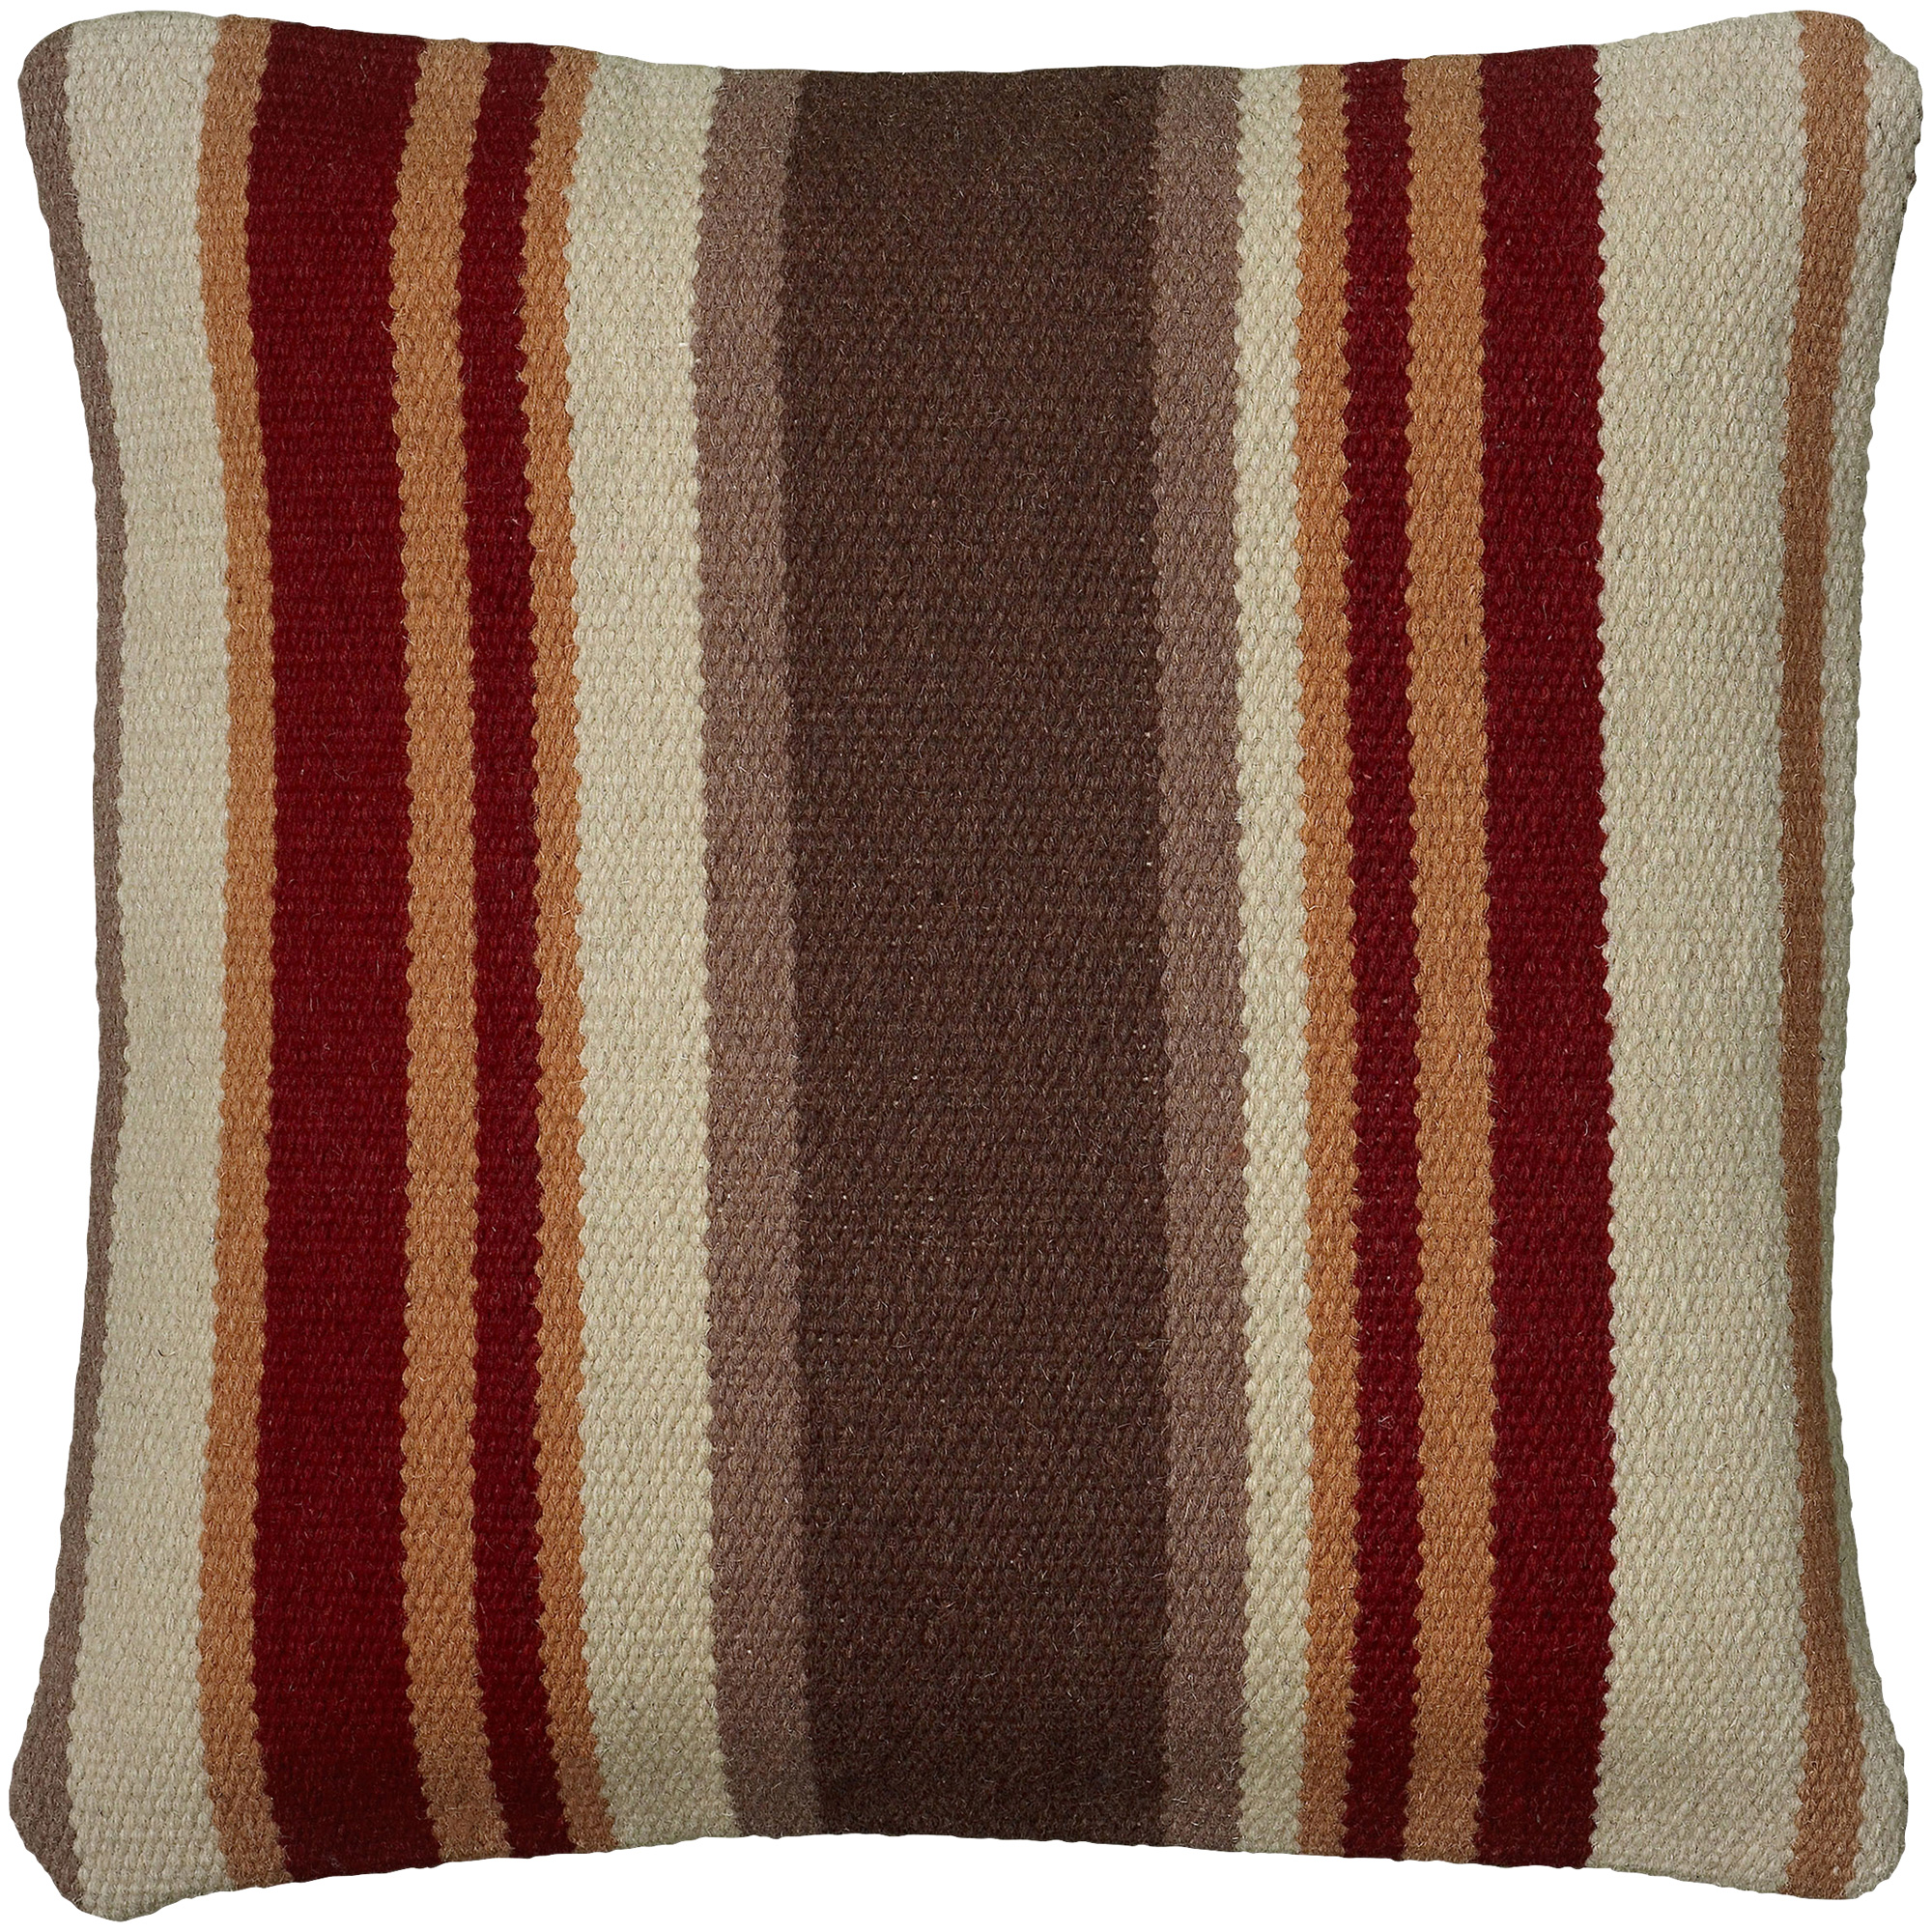 Rizzy Home | Aztec Striped Brown and Red Down Pillow